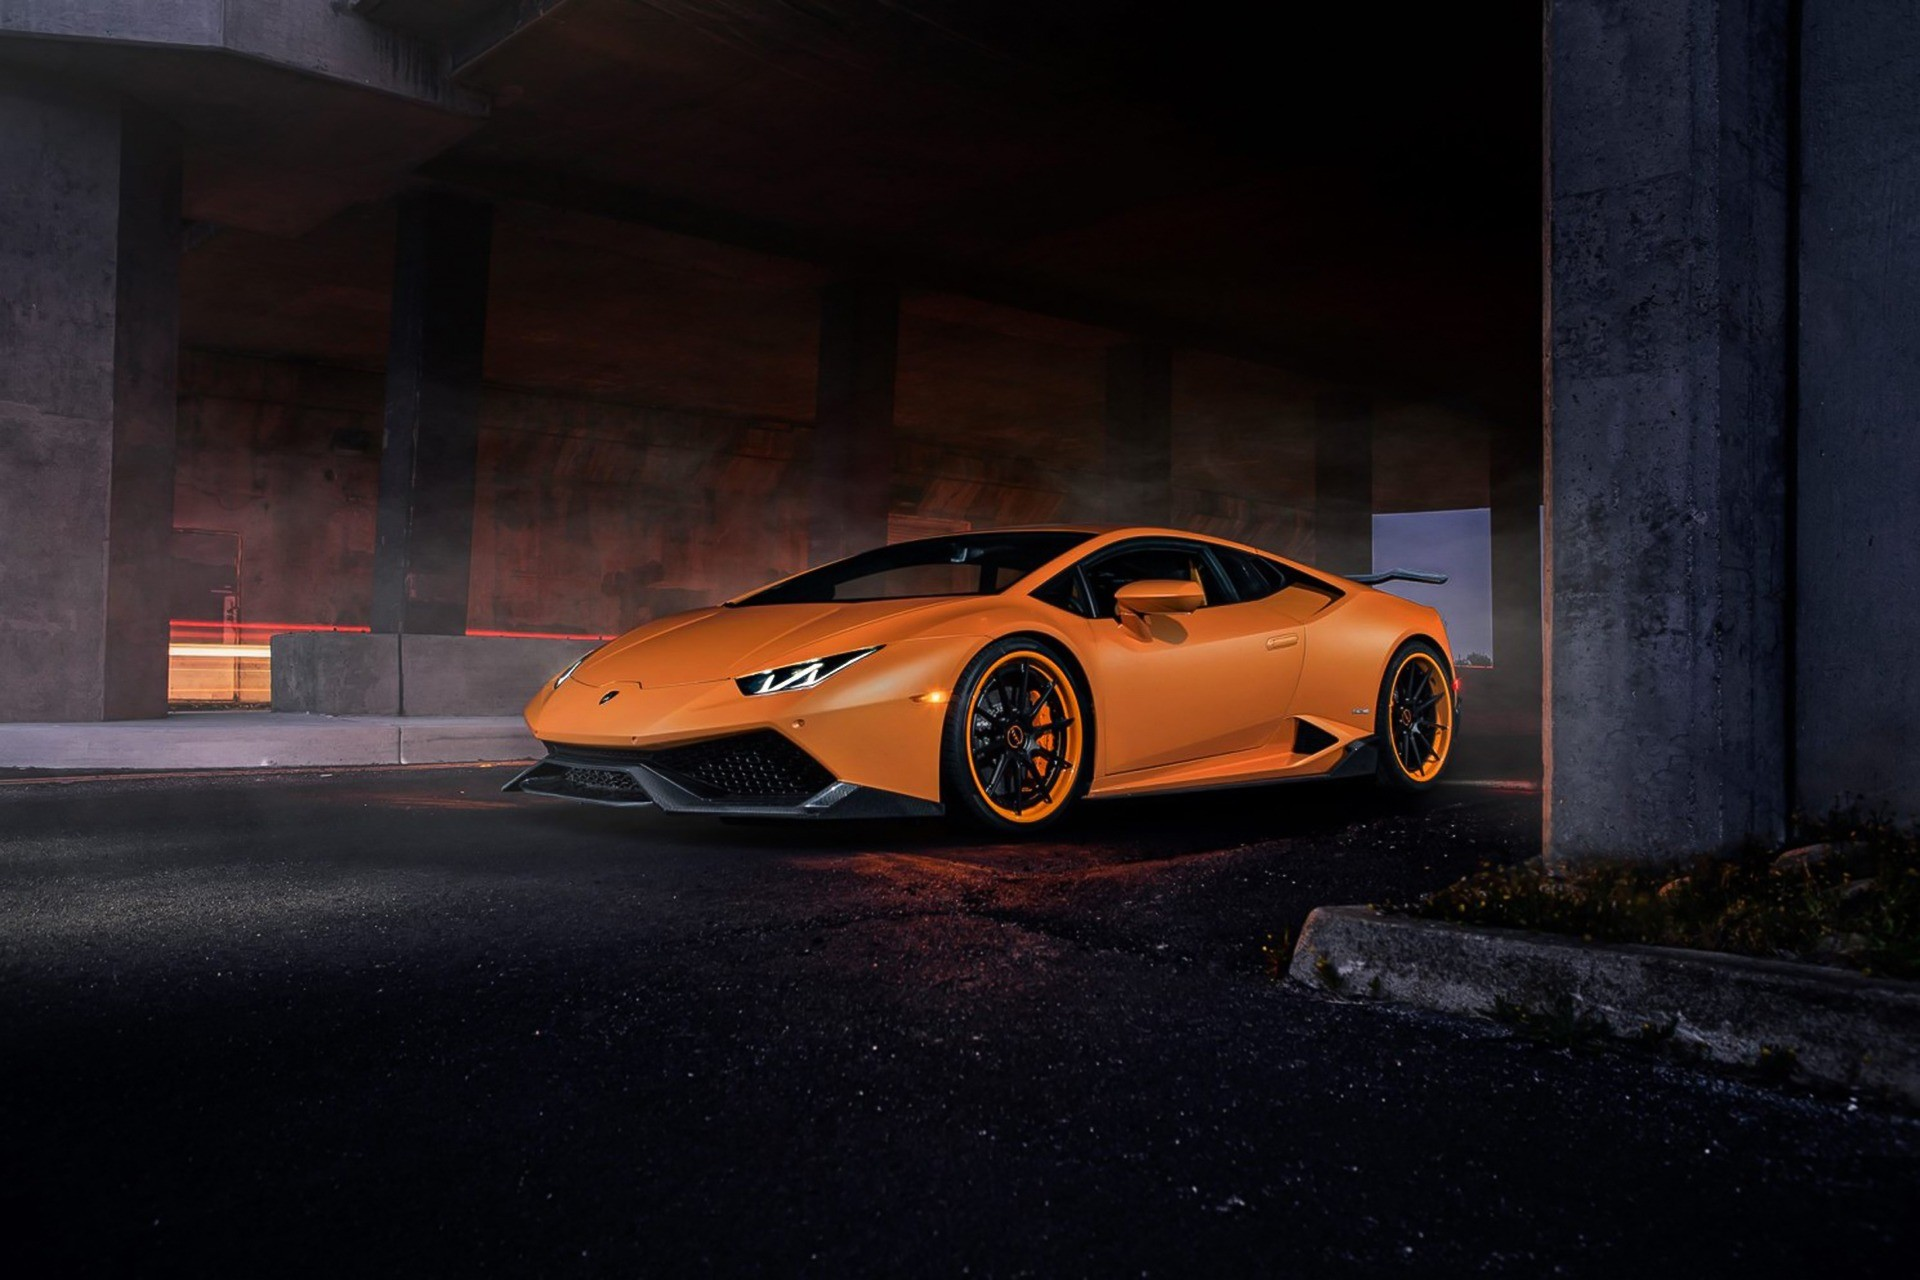 Retro Car Home Wallpaper Lamborghini Lamborghini Huracan Car Vehicle Wallpapers